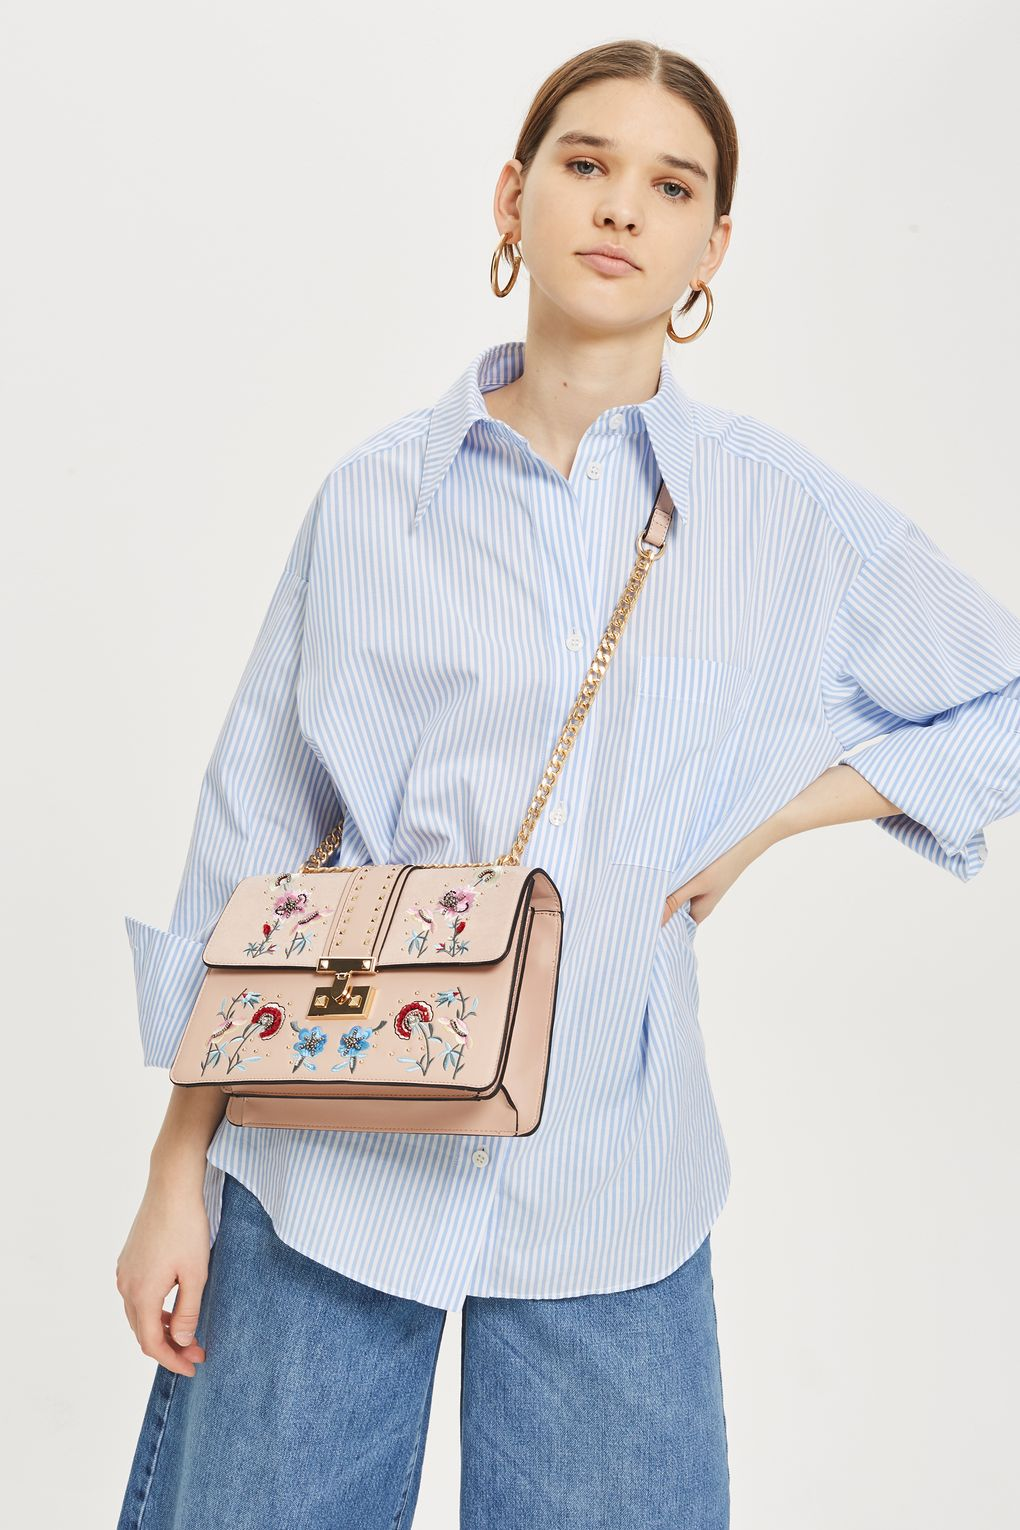 Check out these stylish and functional women's leather cross body bags!